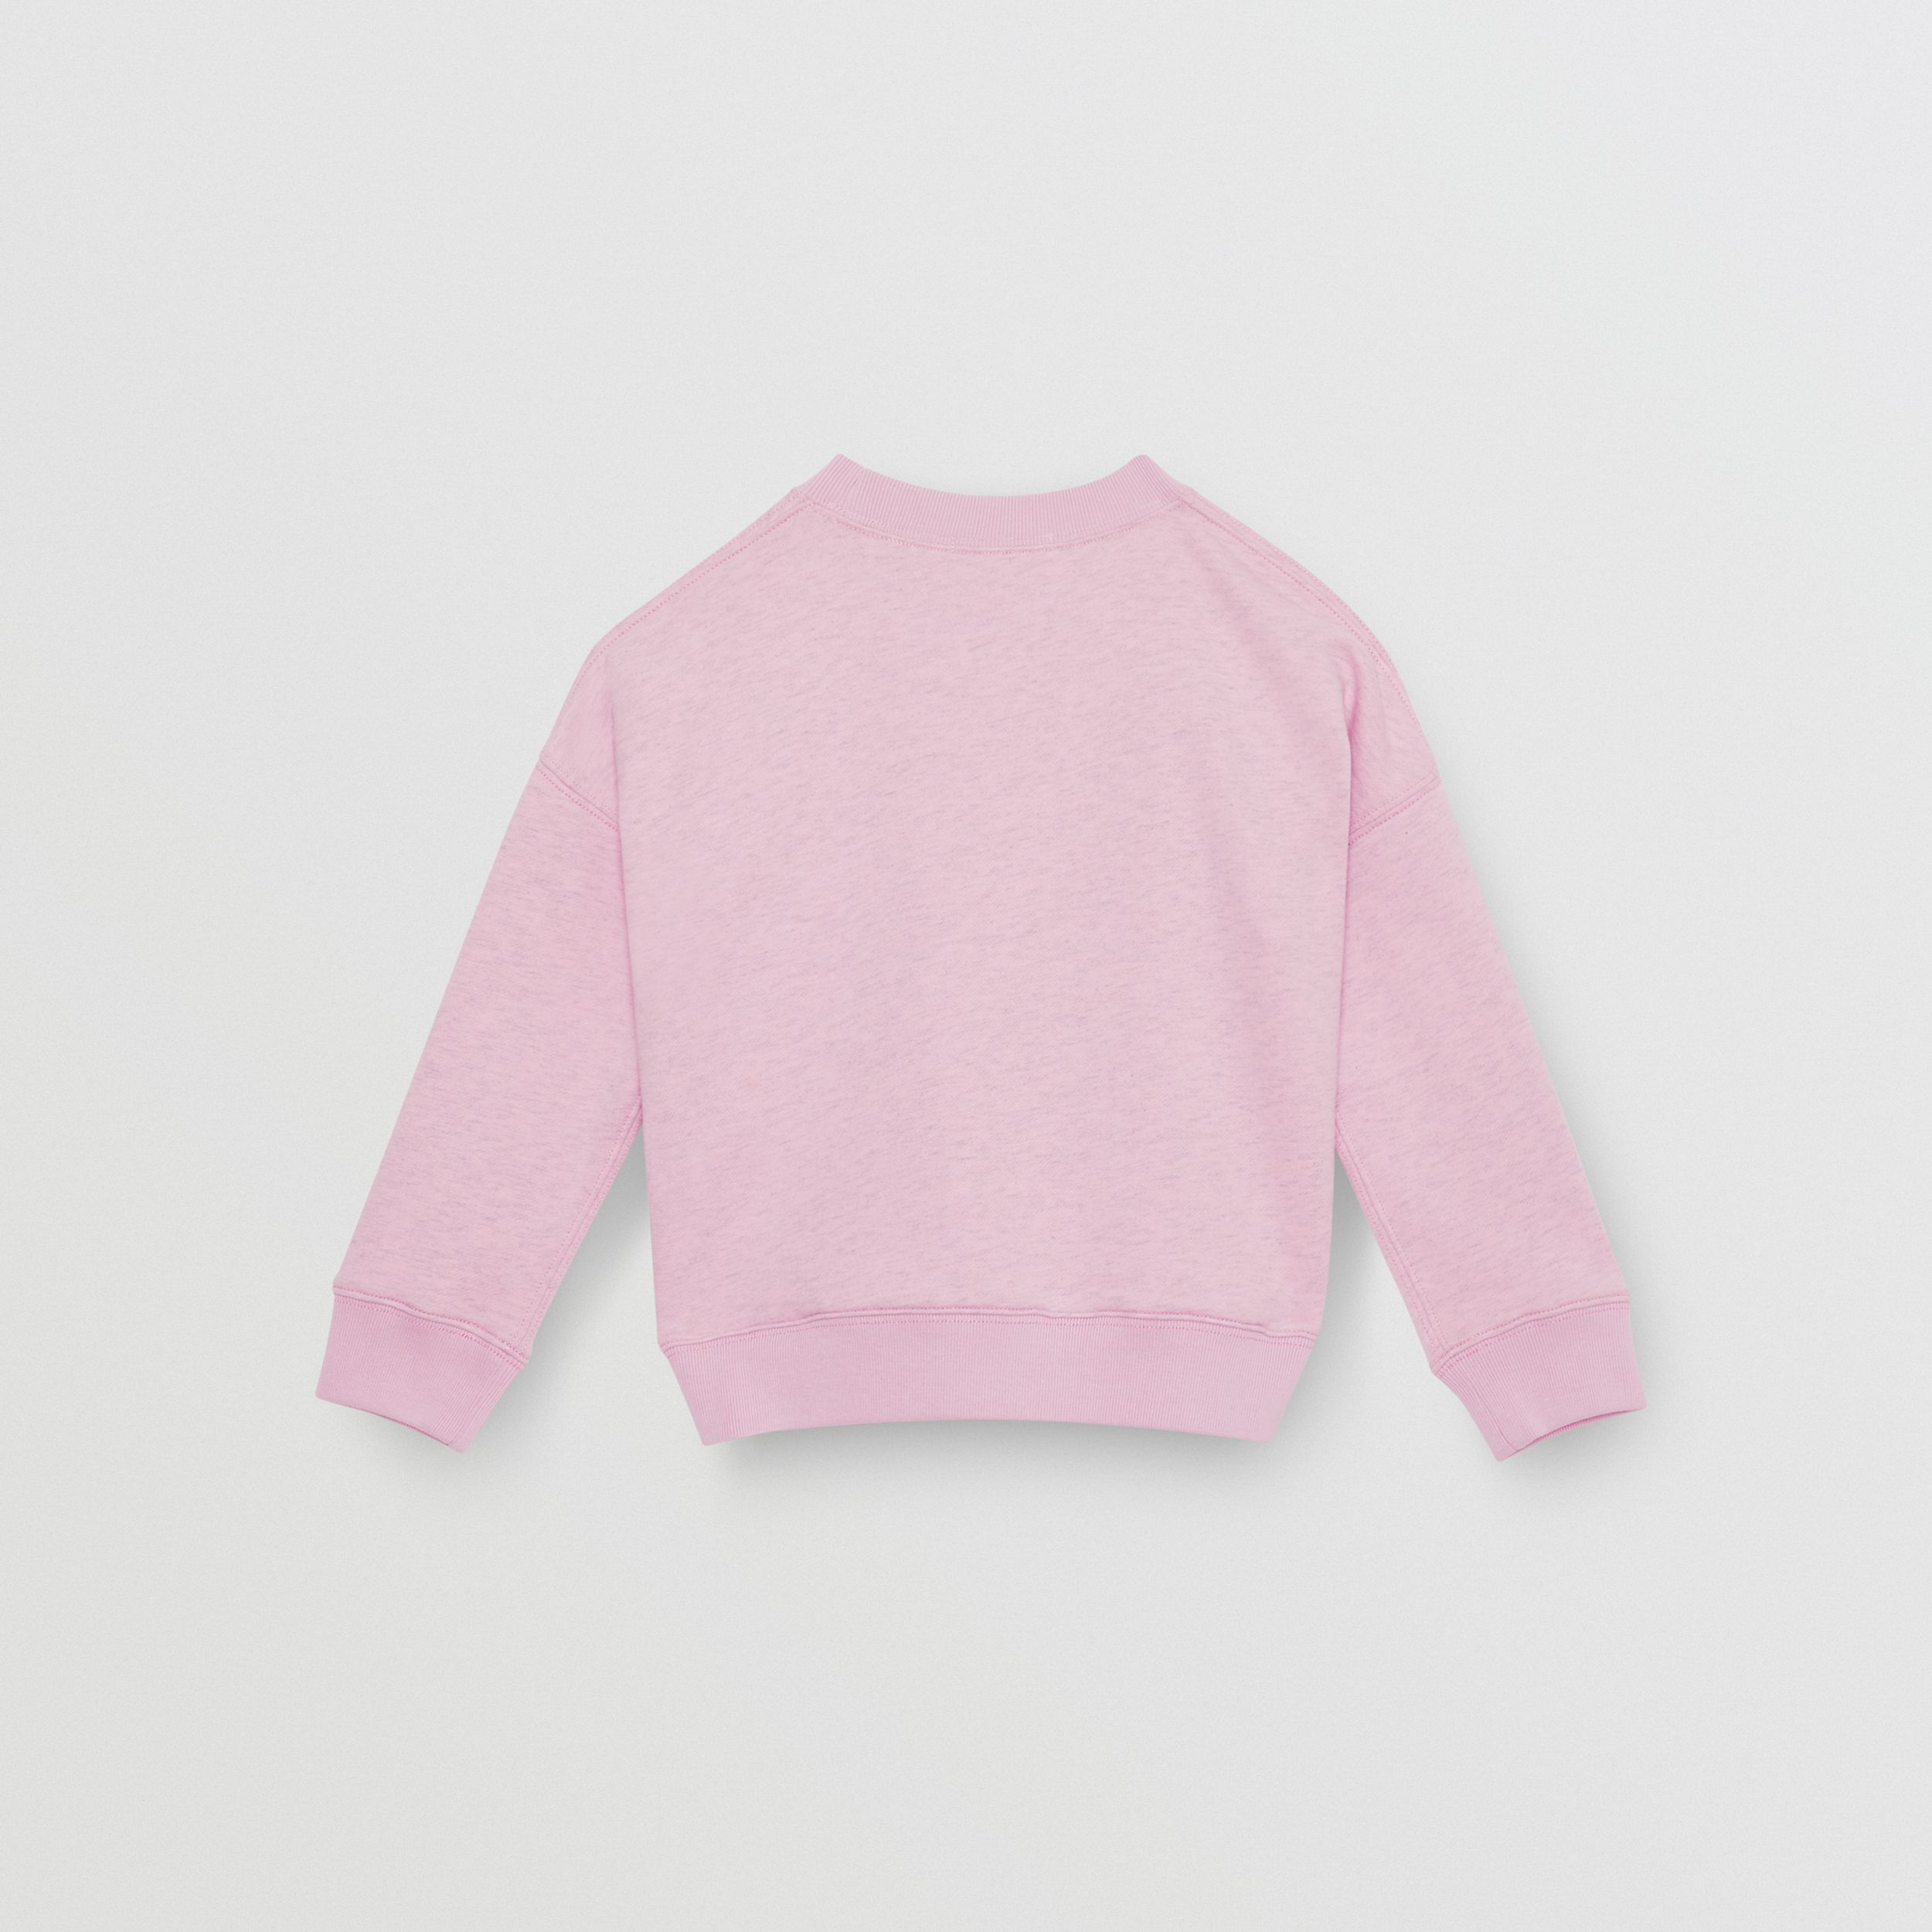 Logo Detail Cotton Sweatshirt in Pale Neon Pink | Burberry - 4